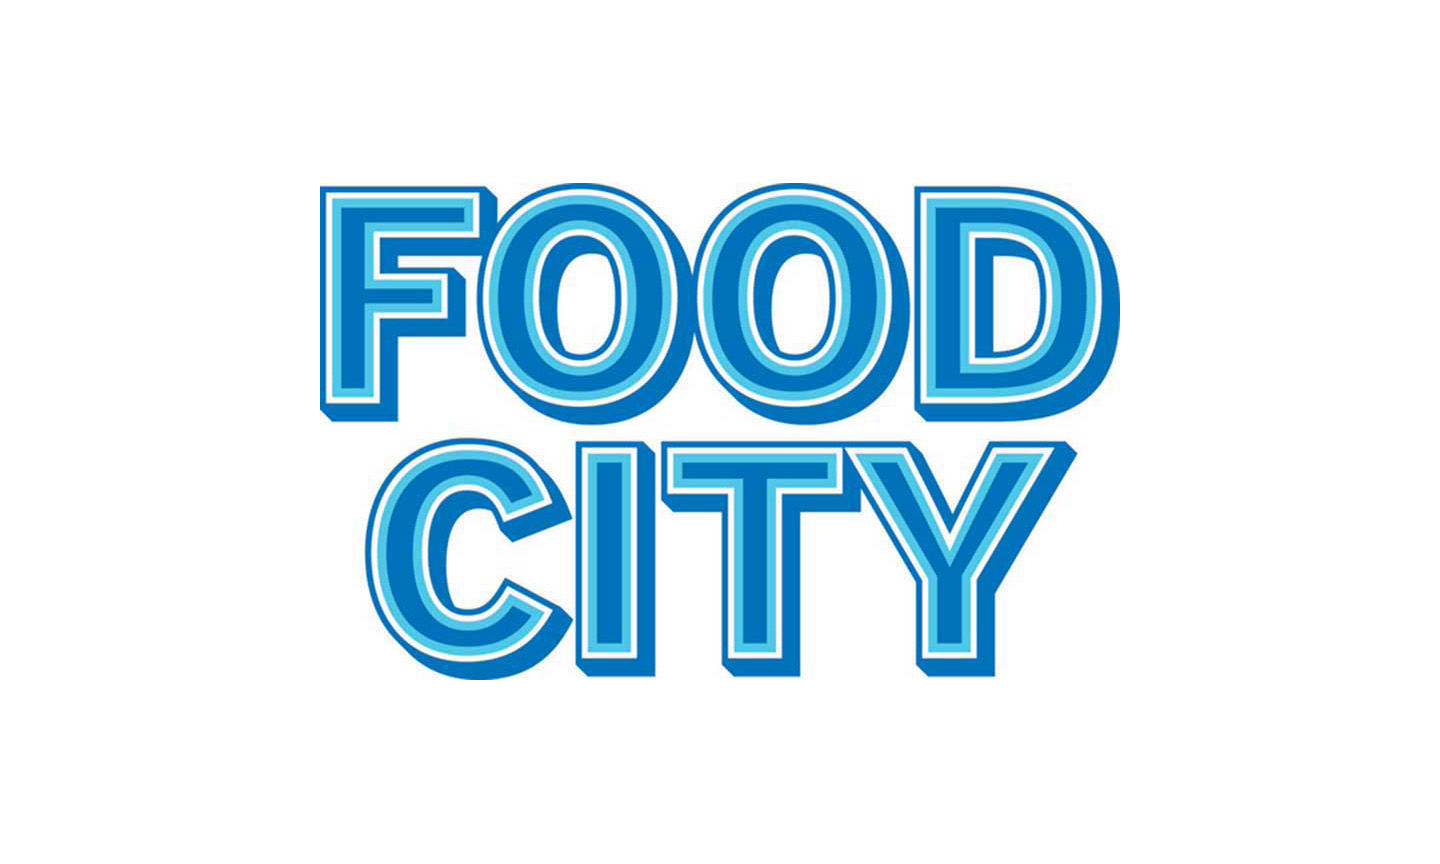 Food City logo fire